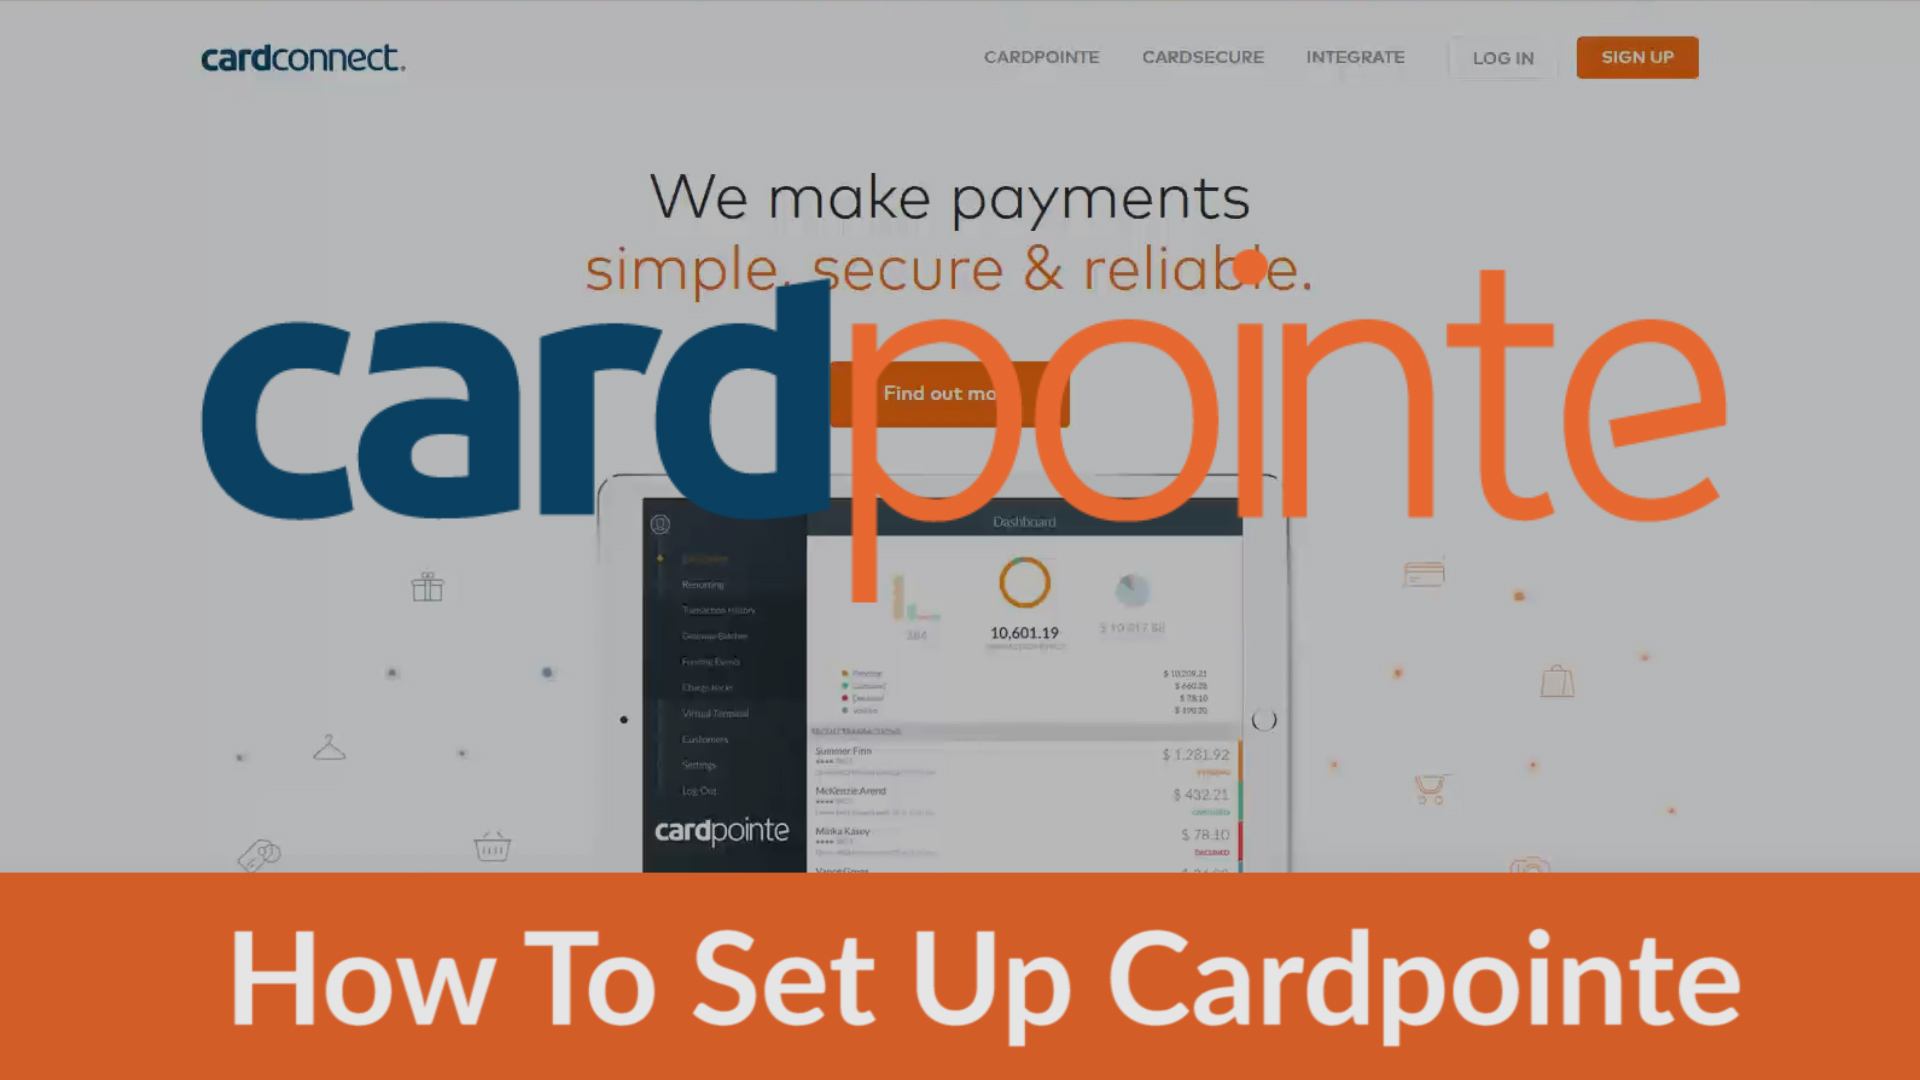 Cardpointe - How To Set Up Cardpointe Online THUMB